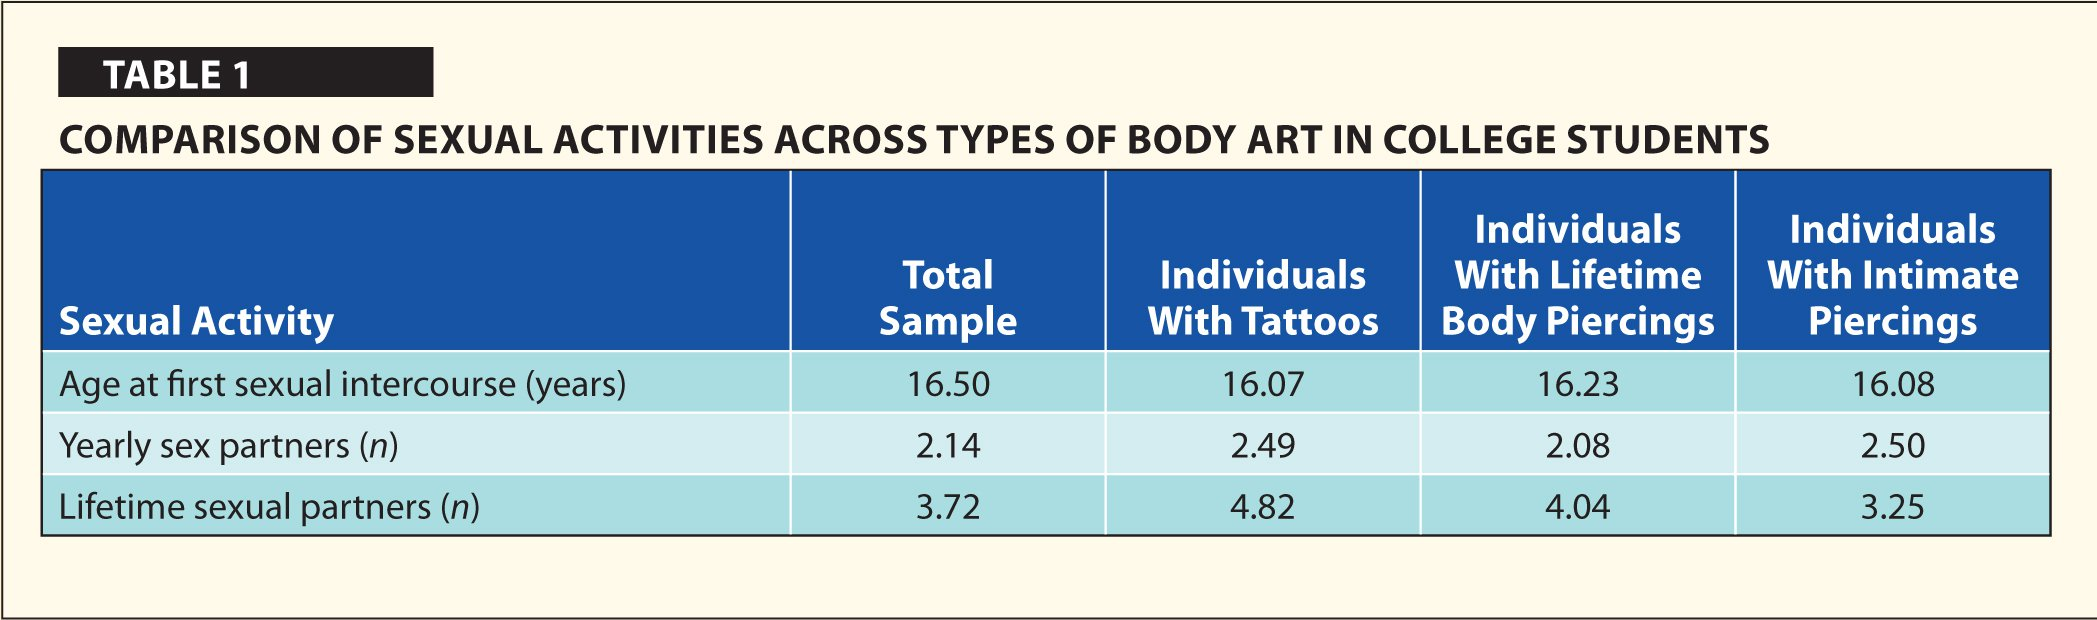 Comparison of Sexual Activities Across Types of Body Art In College Students